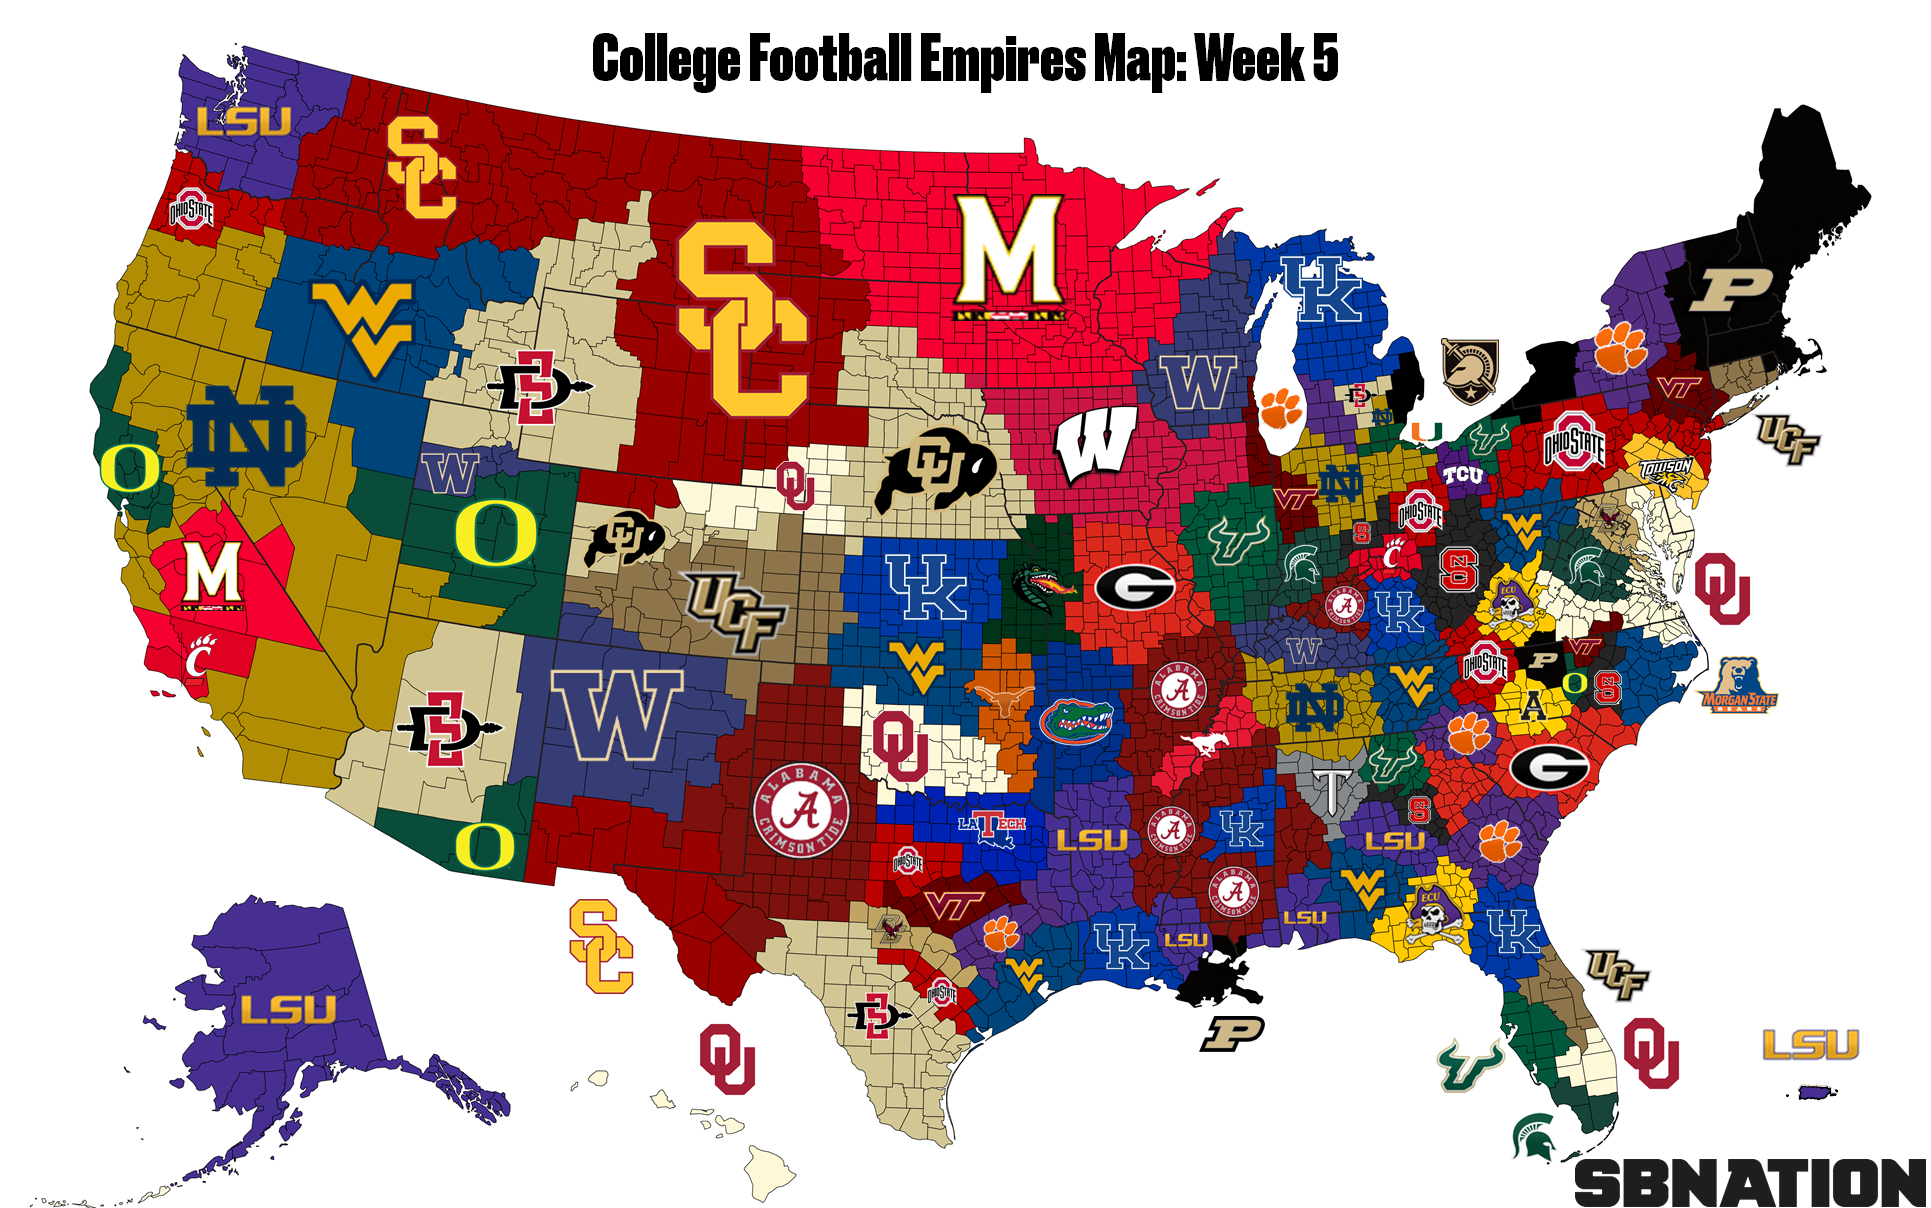 Florida Colleges Map The College Football Empires Map, where Florida is now the land  Florida Colleges Map